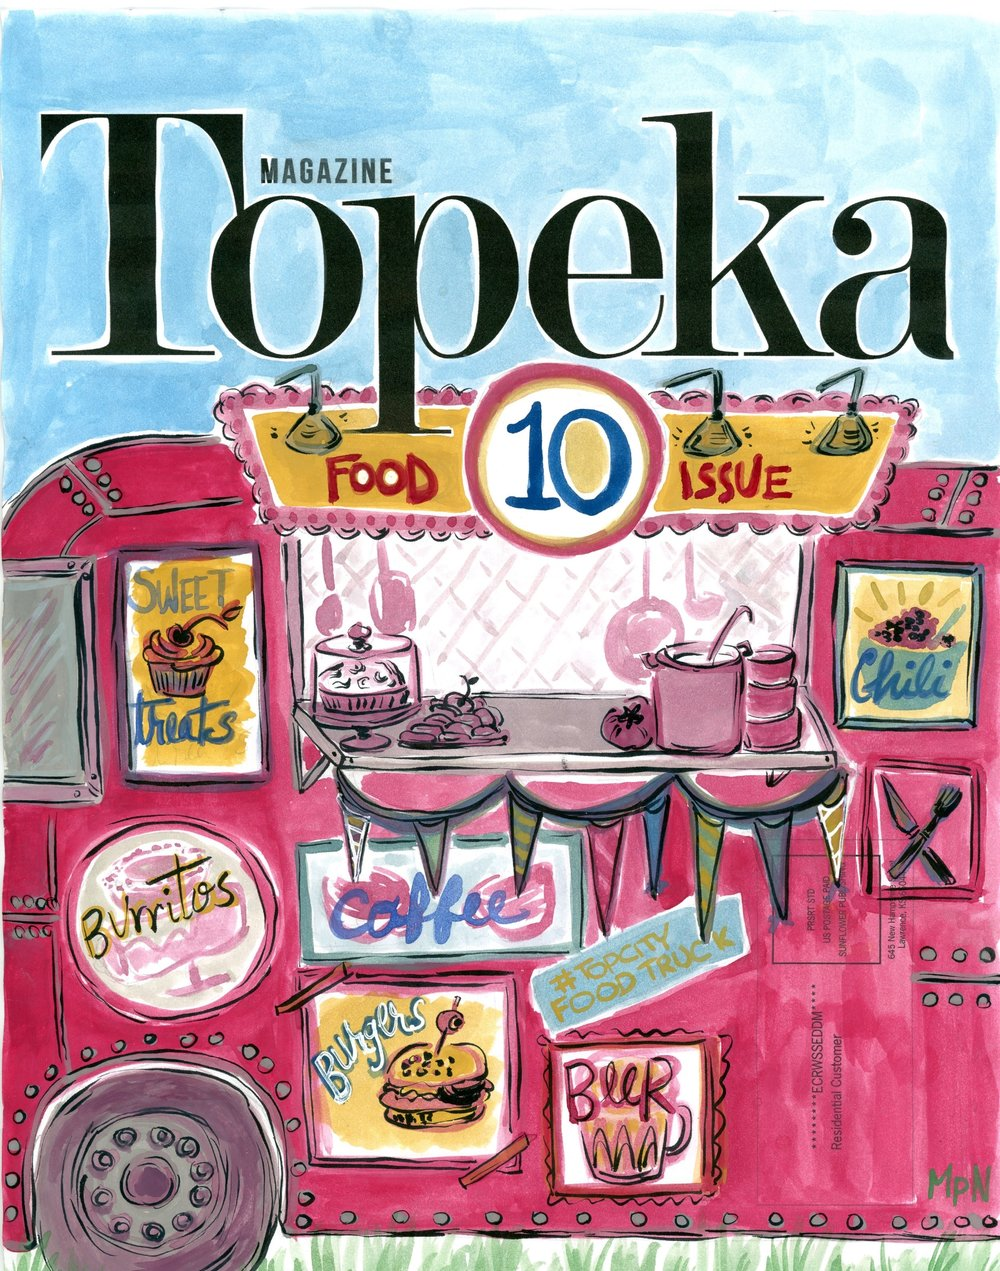 Cover and illustrations for Topeka Magazine, 10th anniversary food issue